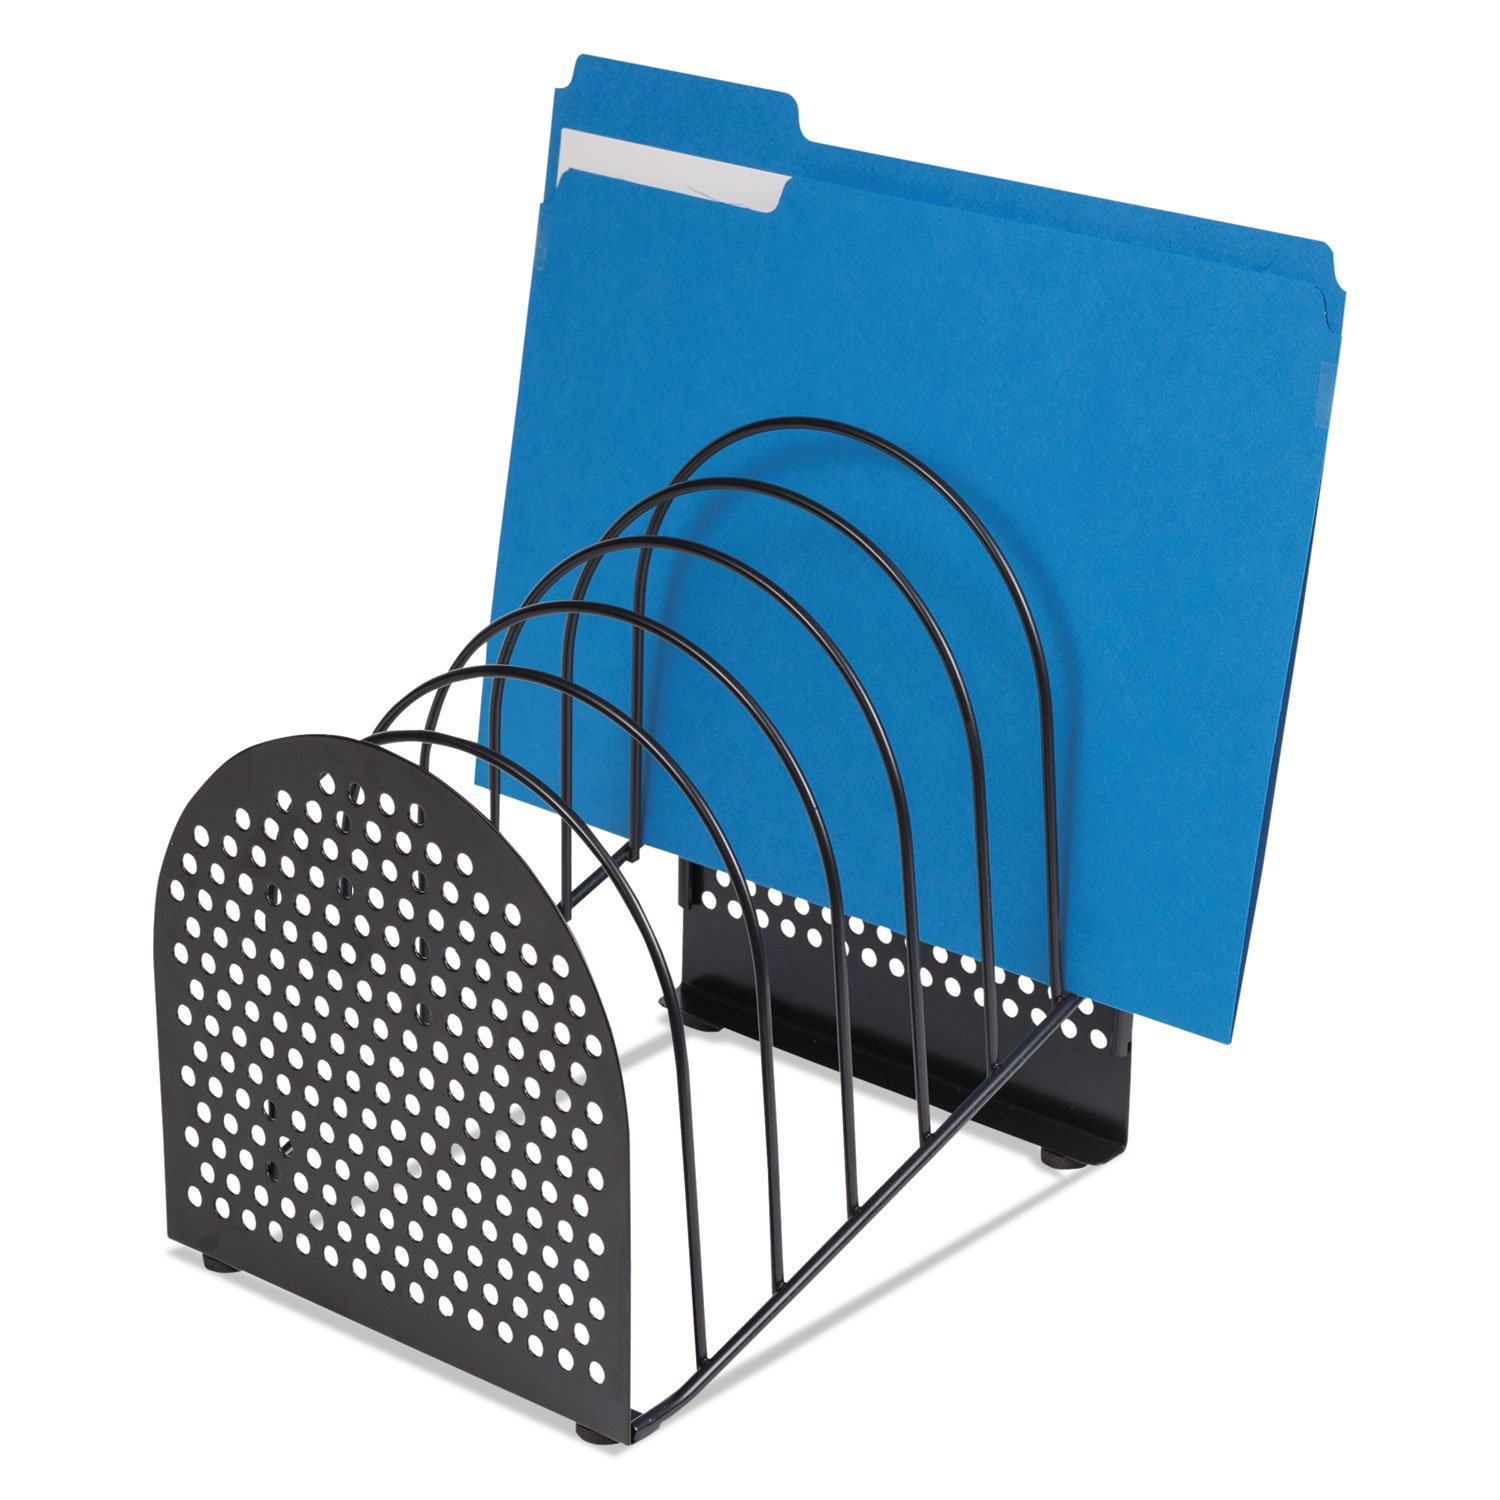 Fellowesamp;reg; Perf-Ect Step File, Seven Sections, Metal/Wire, 7w x 9 7/8d x 9 1/8h, Black